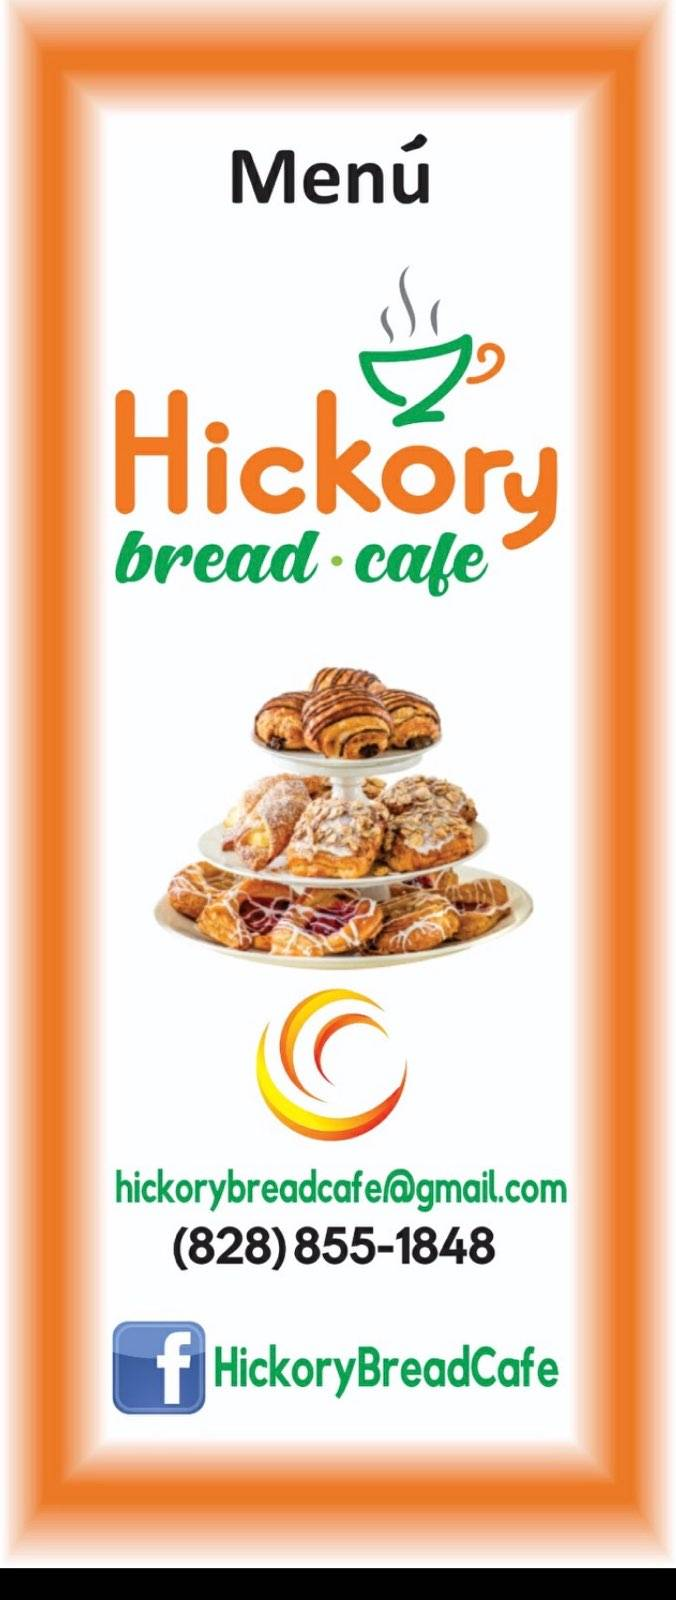 Hickory Bread Cafe | restaurant | 1756 Catawba Valley Blvd SE, Hickory, NC 28602, USA | 8288551848 OR +1 828-855-1848